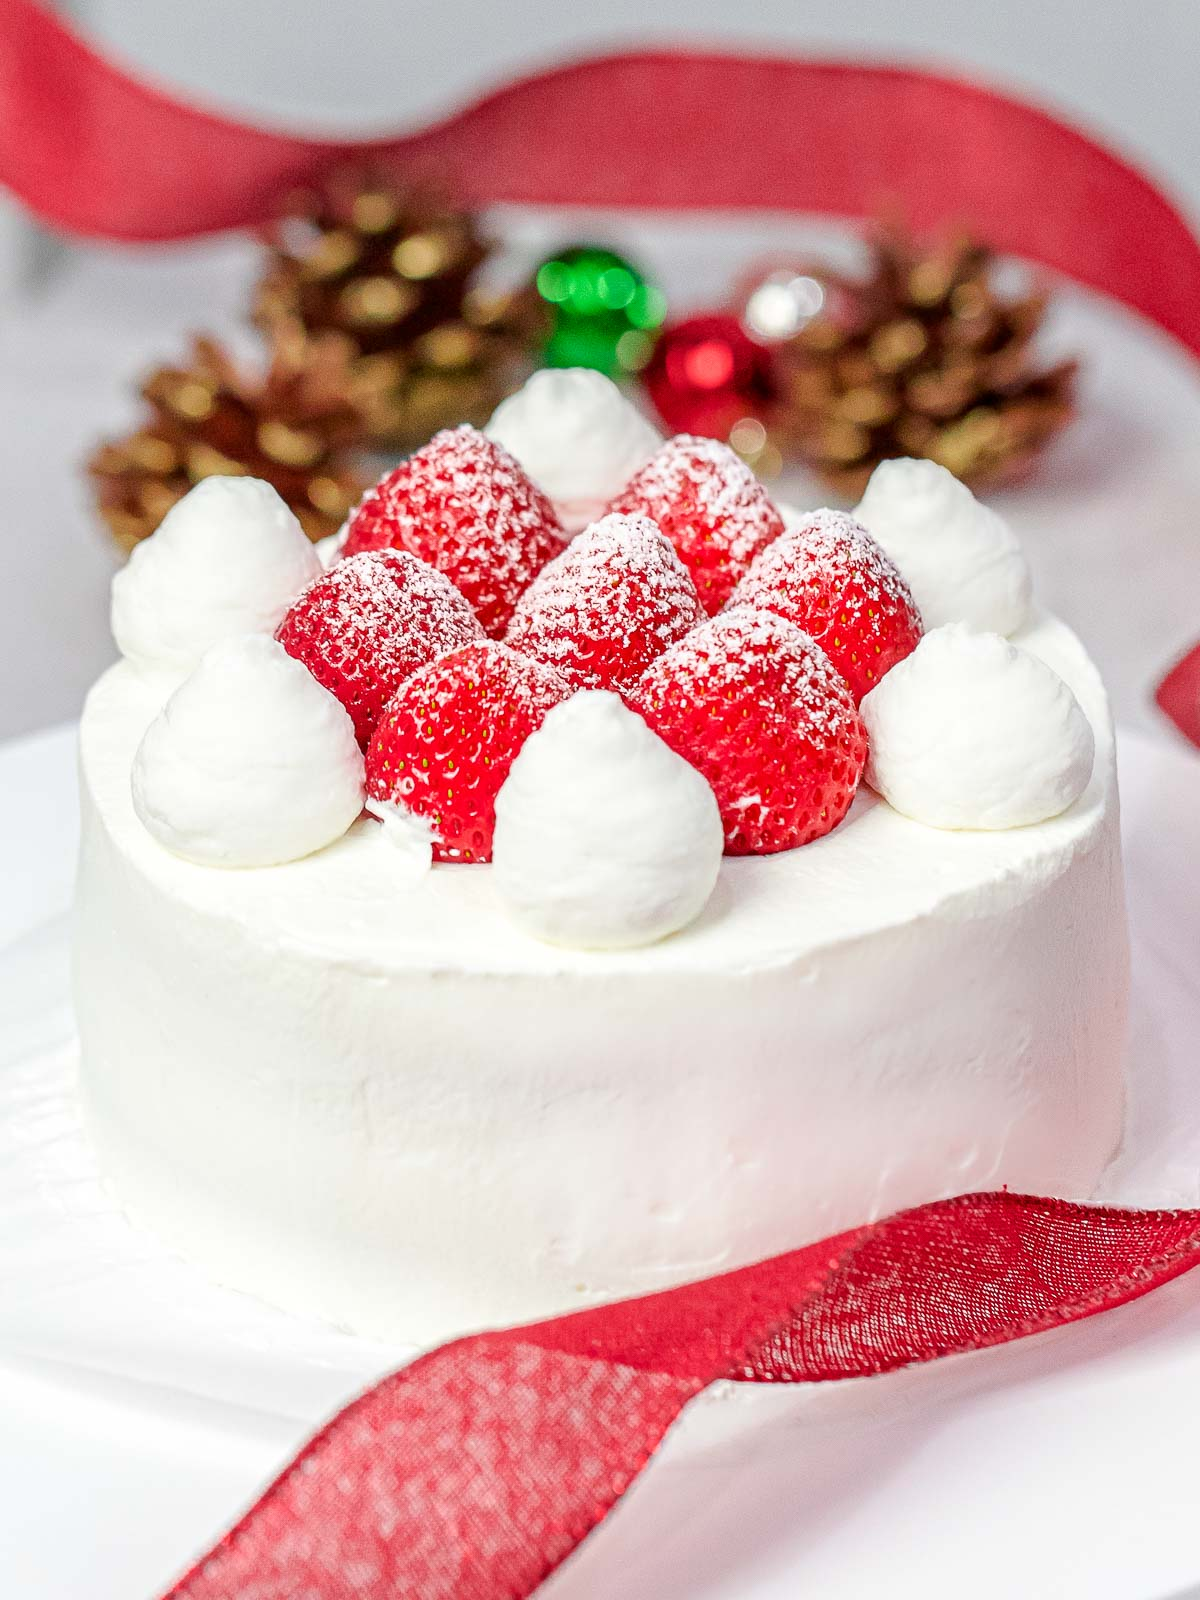 Japanese Christmas cake decorated with whole strawberries dusted with powdered sugar with Christmas ornaments, red ribbon, and pine cones in the back